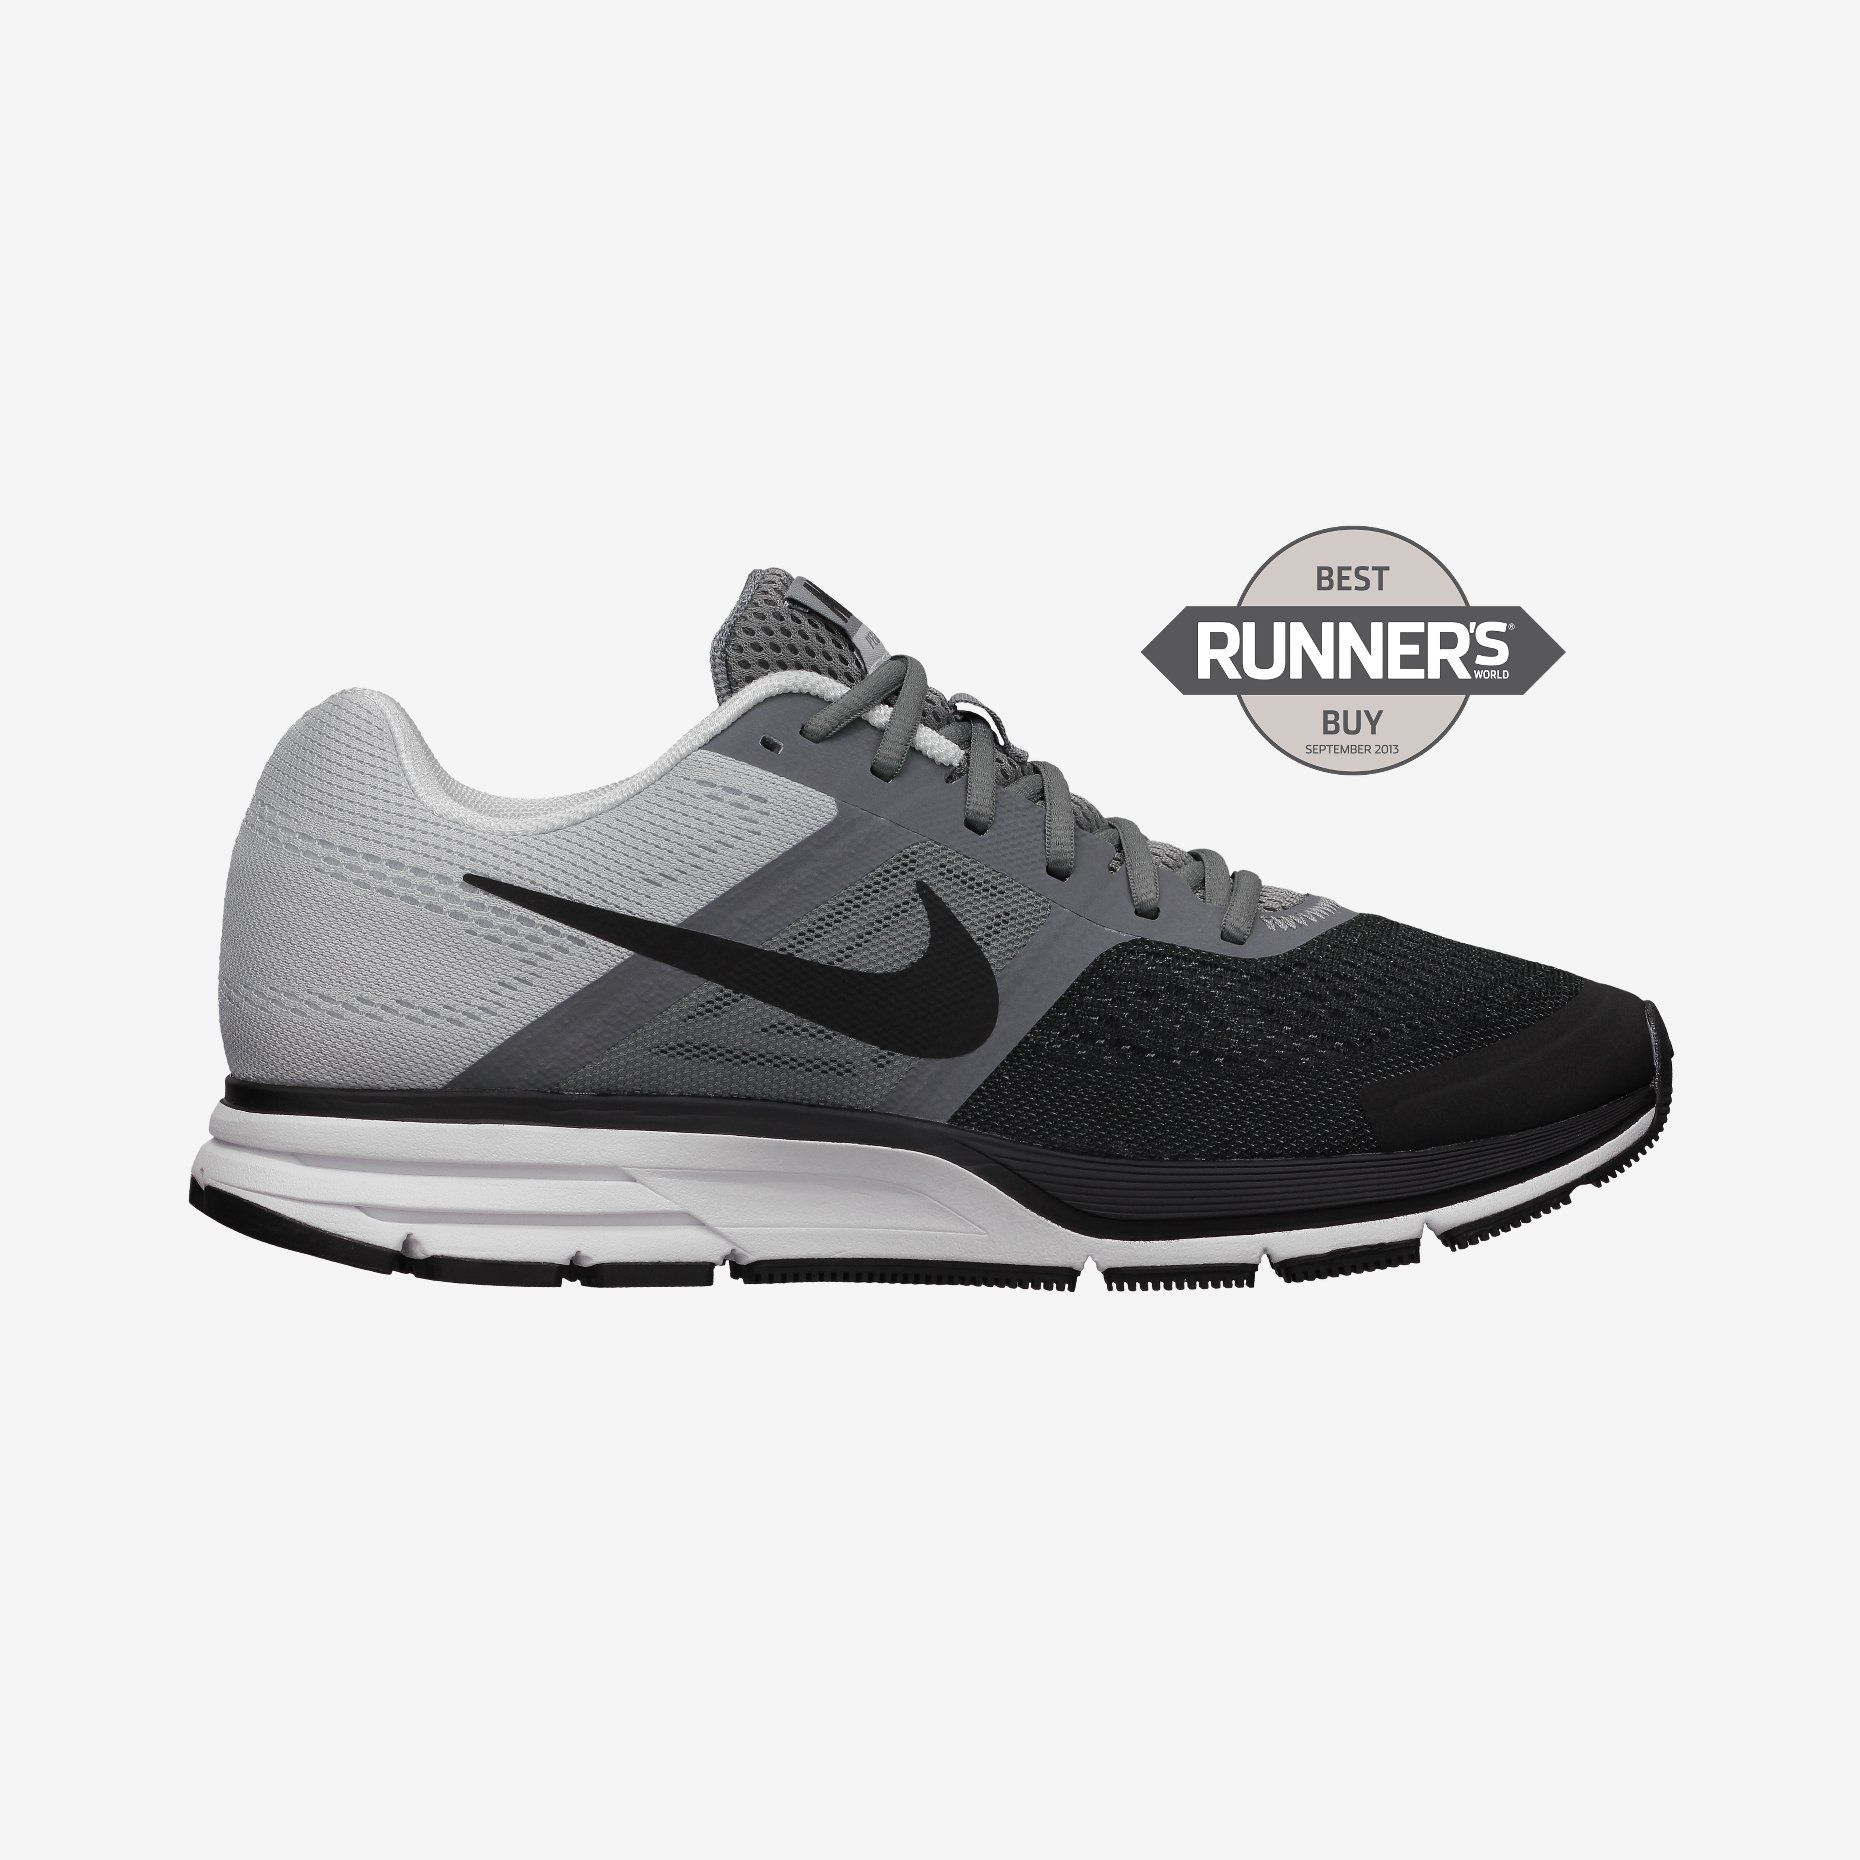 Nike Store. Nike Air Pegasus 30 Men's Running Shoe